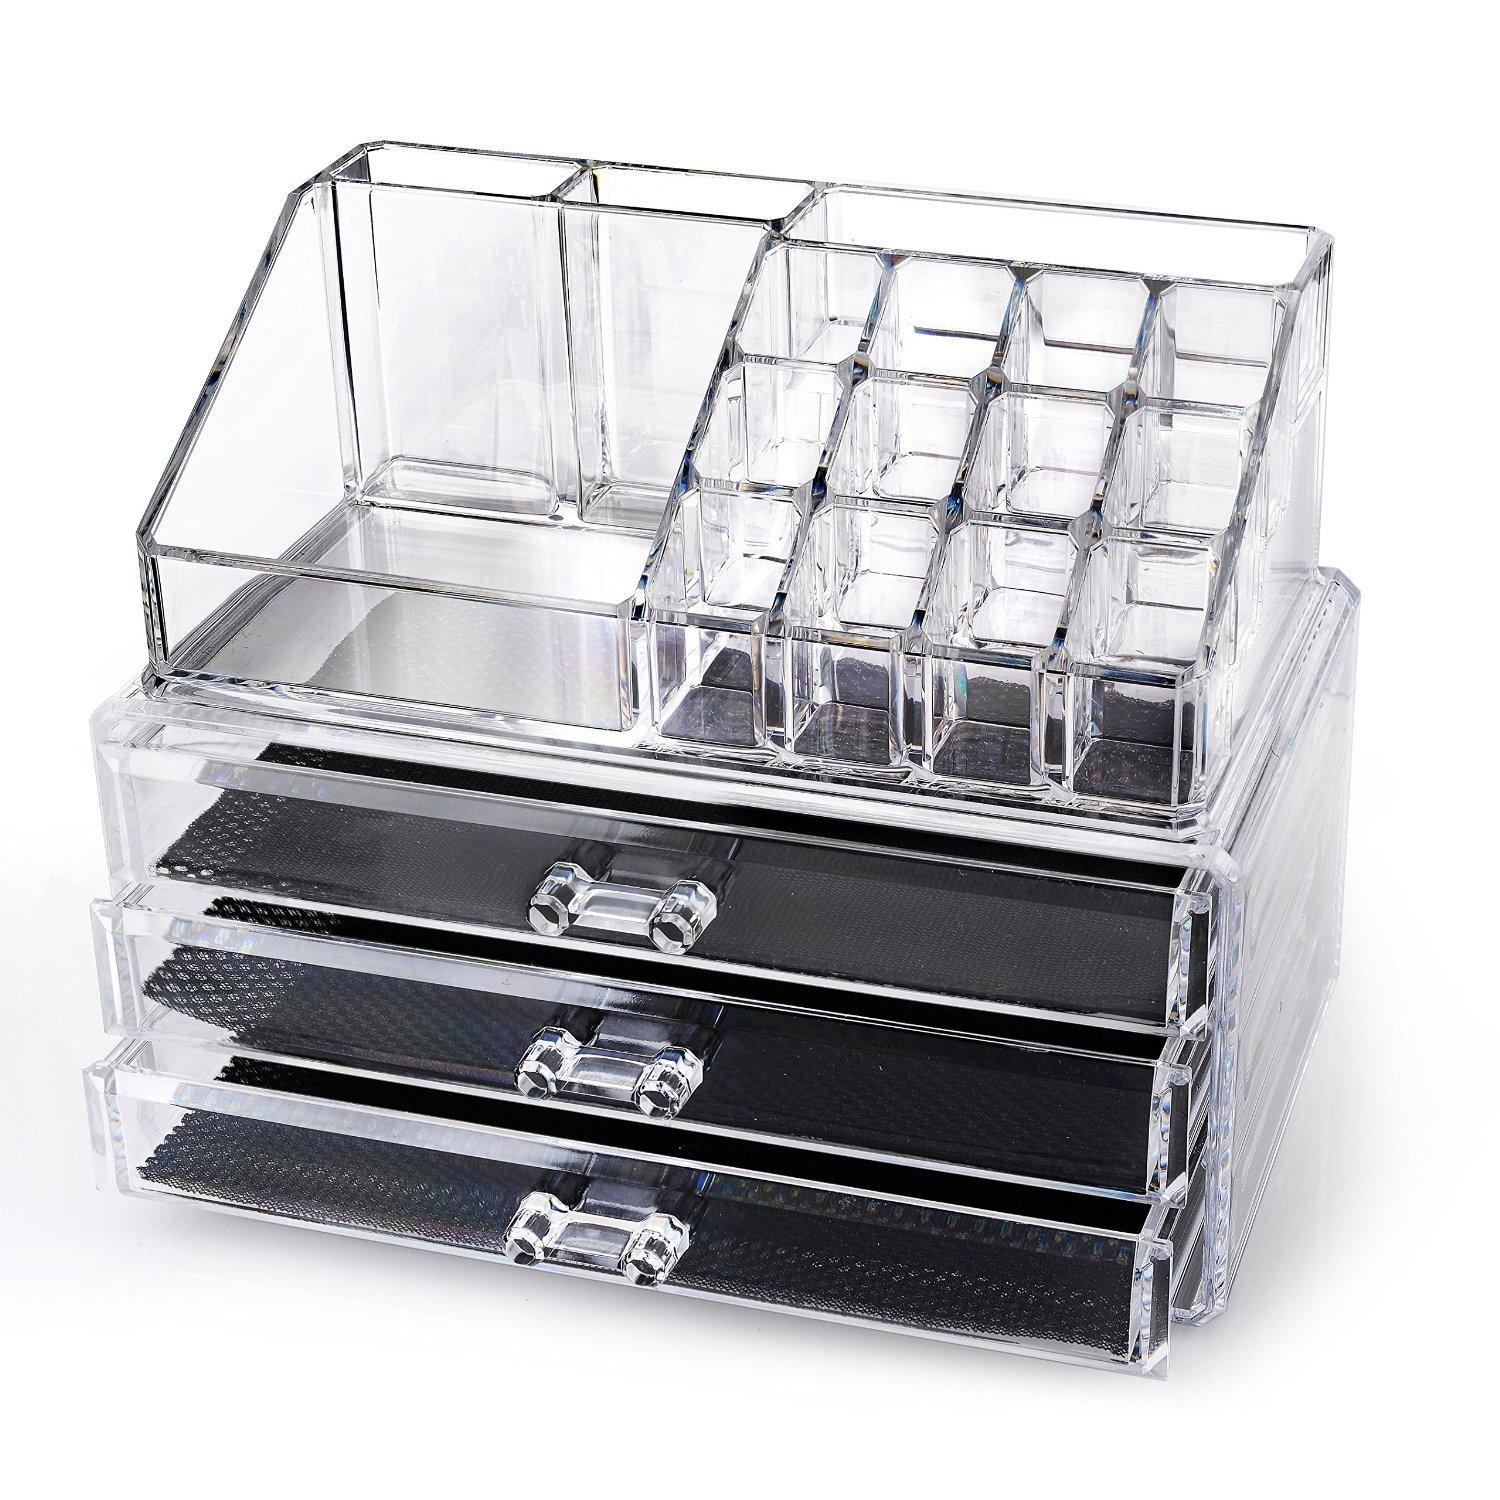 Home-it Clear acrylic makeup organizer cosmetic organizer and Large 3 Drawer Jewerly Chest